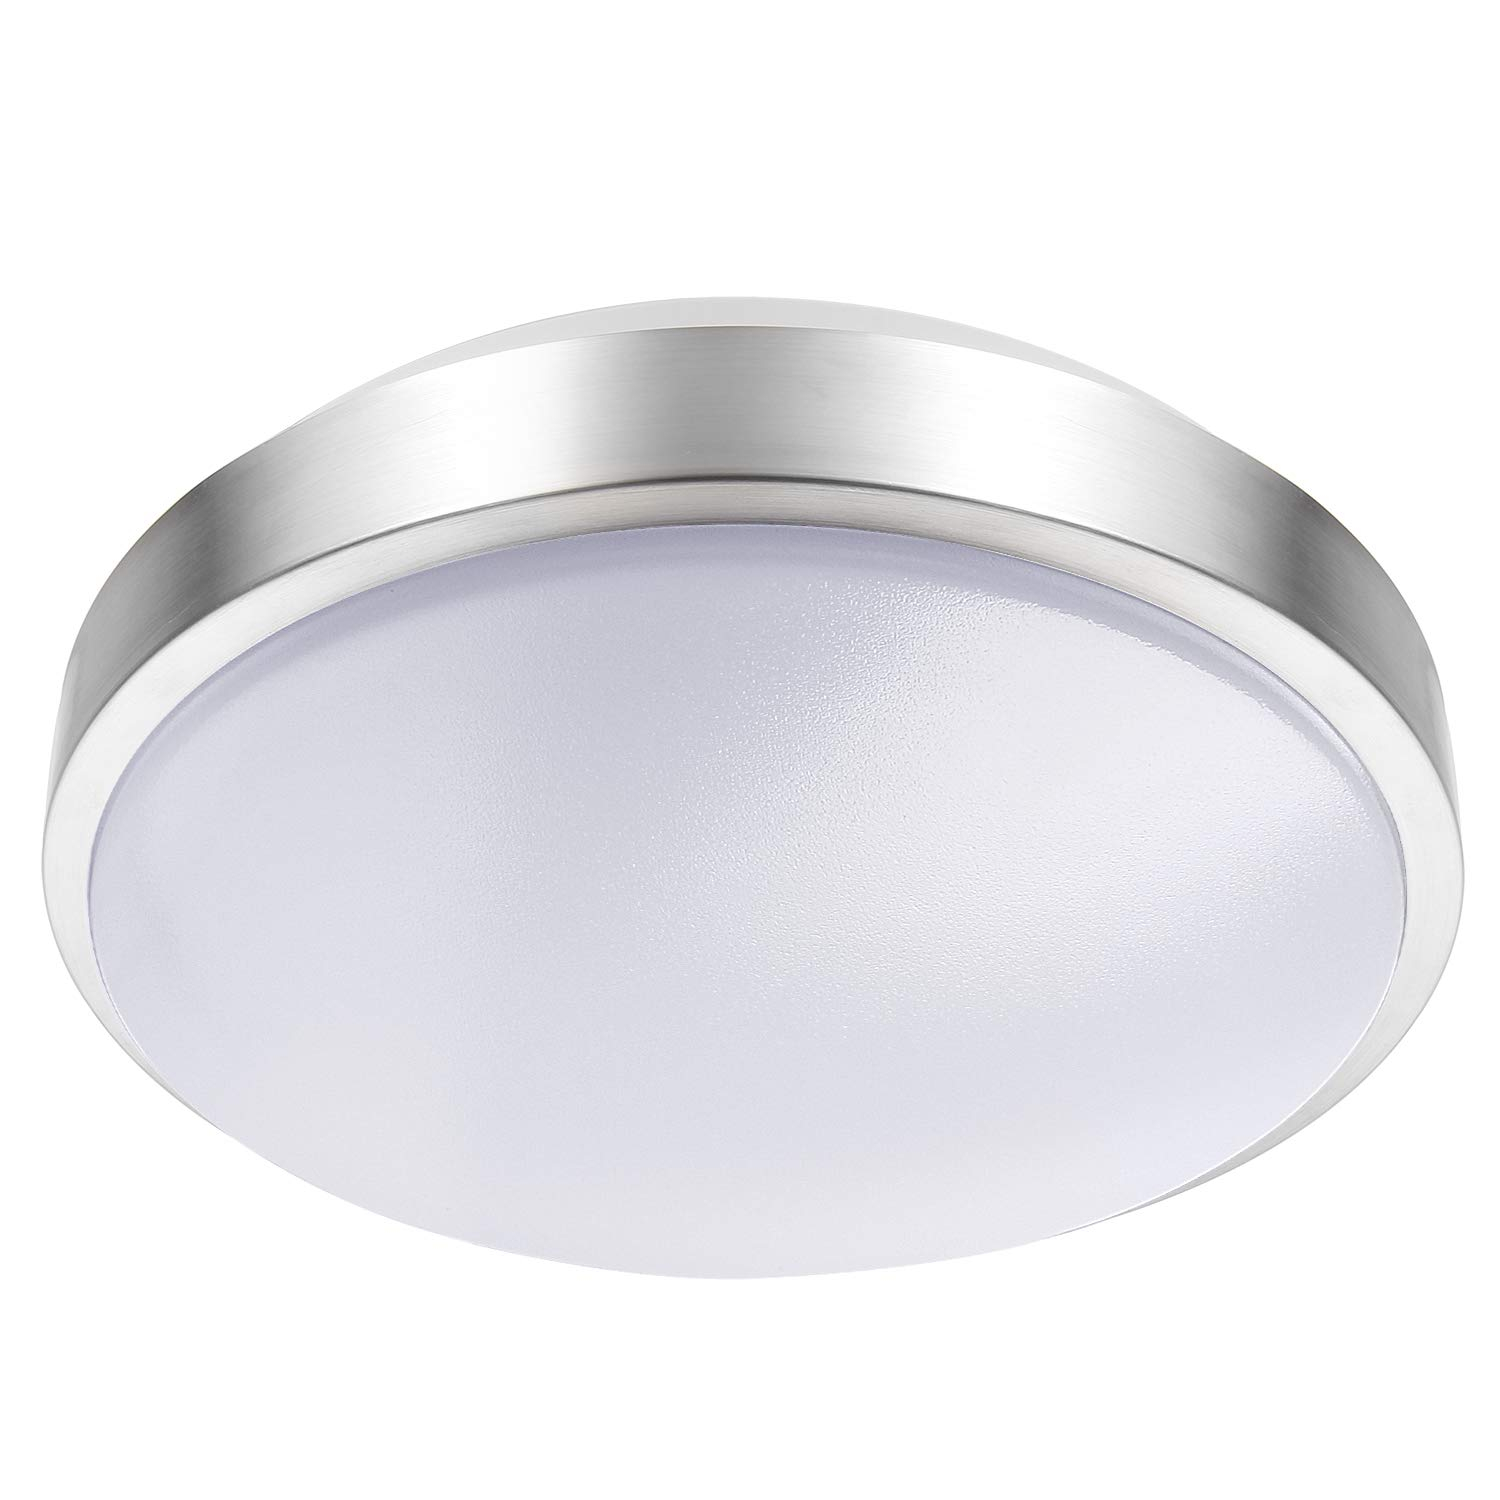 Lineway motion sensing ceiling light indoor outdoor led flush mount light fixture 15w 3000k ceiling lamp radar sensor for bathroom hallway stairway